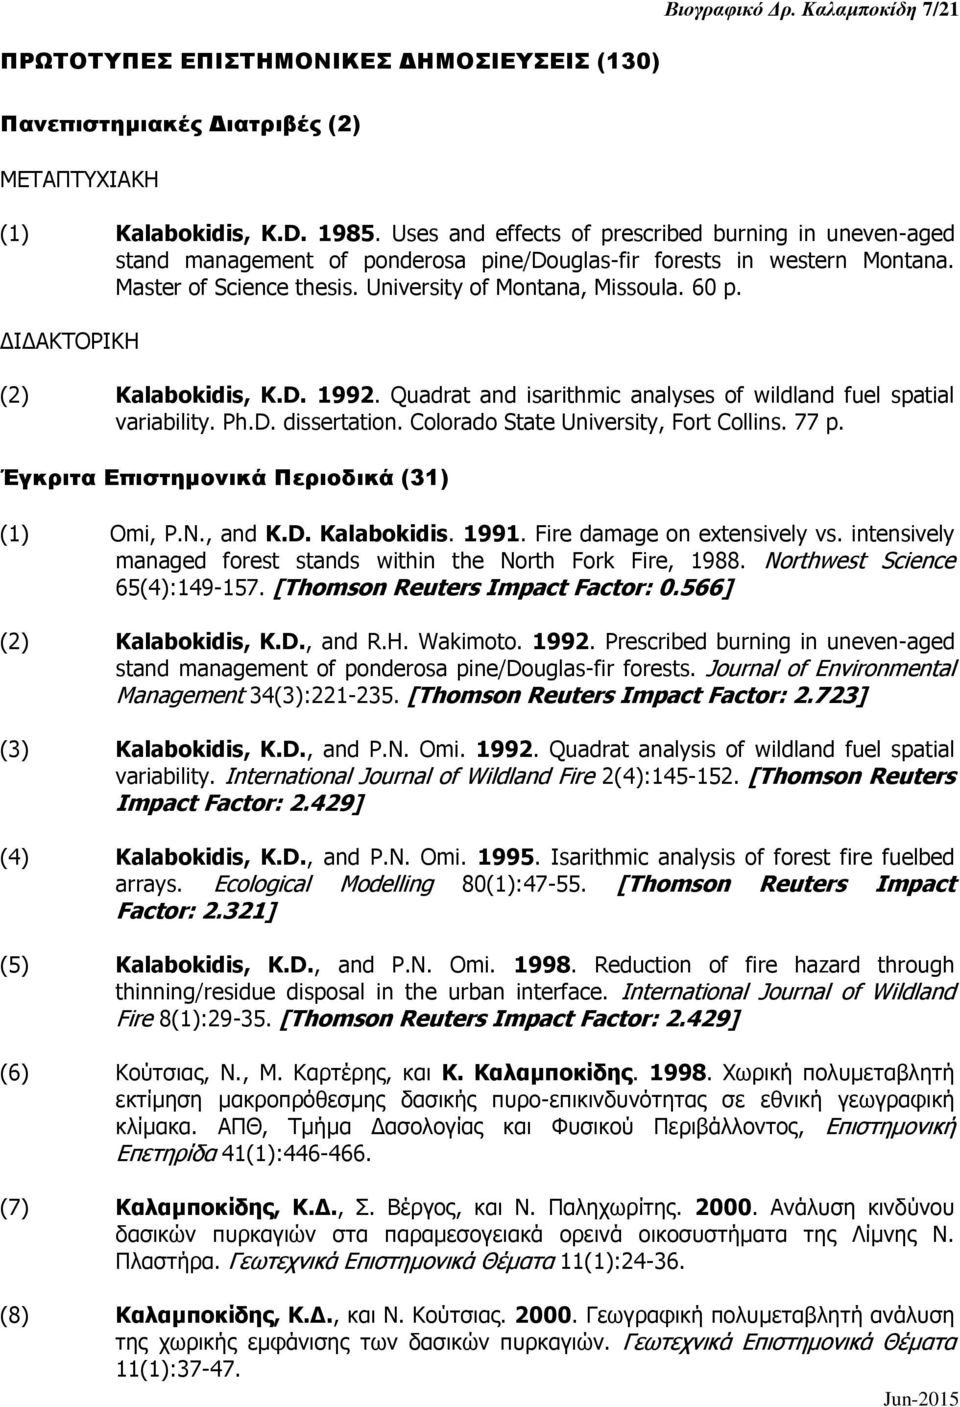 ΔΙΔΑΚΤΟΡΙΚΗ (2) Kalabokidis, K.D. 1992. Quadrat and isarithmic analyses of wildland fuel spatial variability. Ph.D. dissertation. Colorado State University, Fort Collins. 77 p.